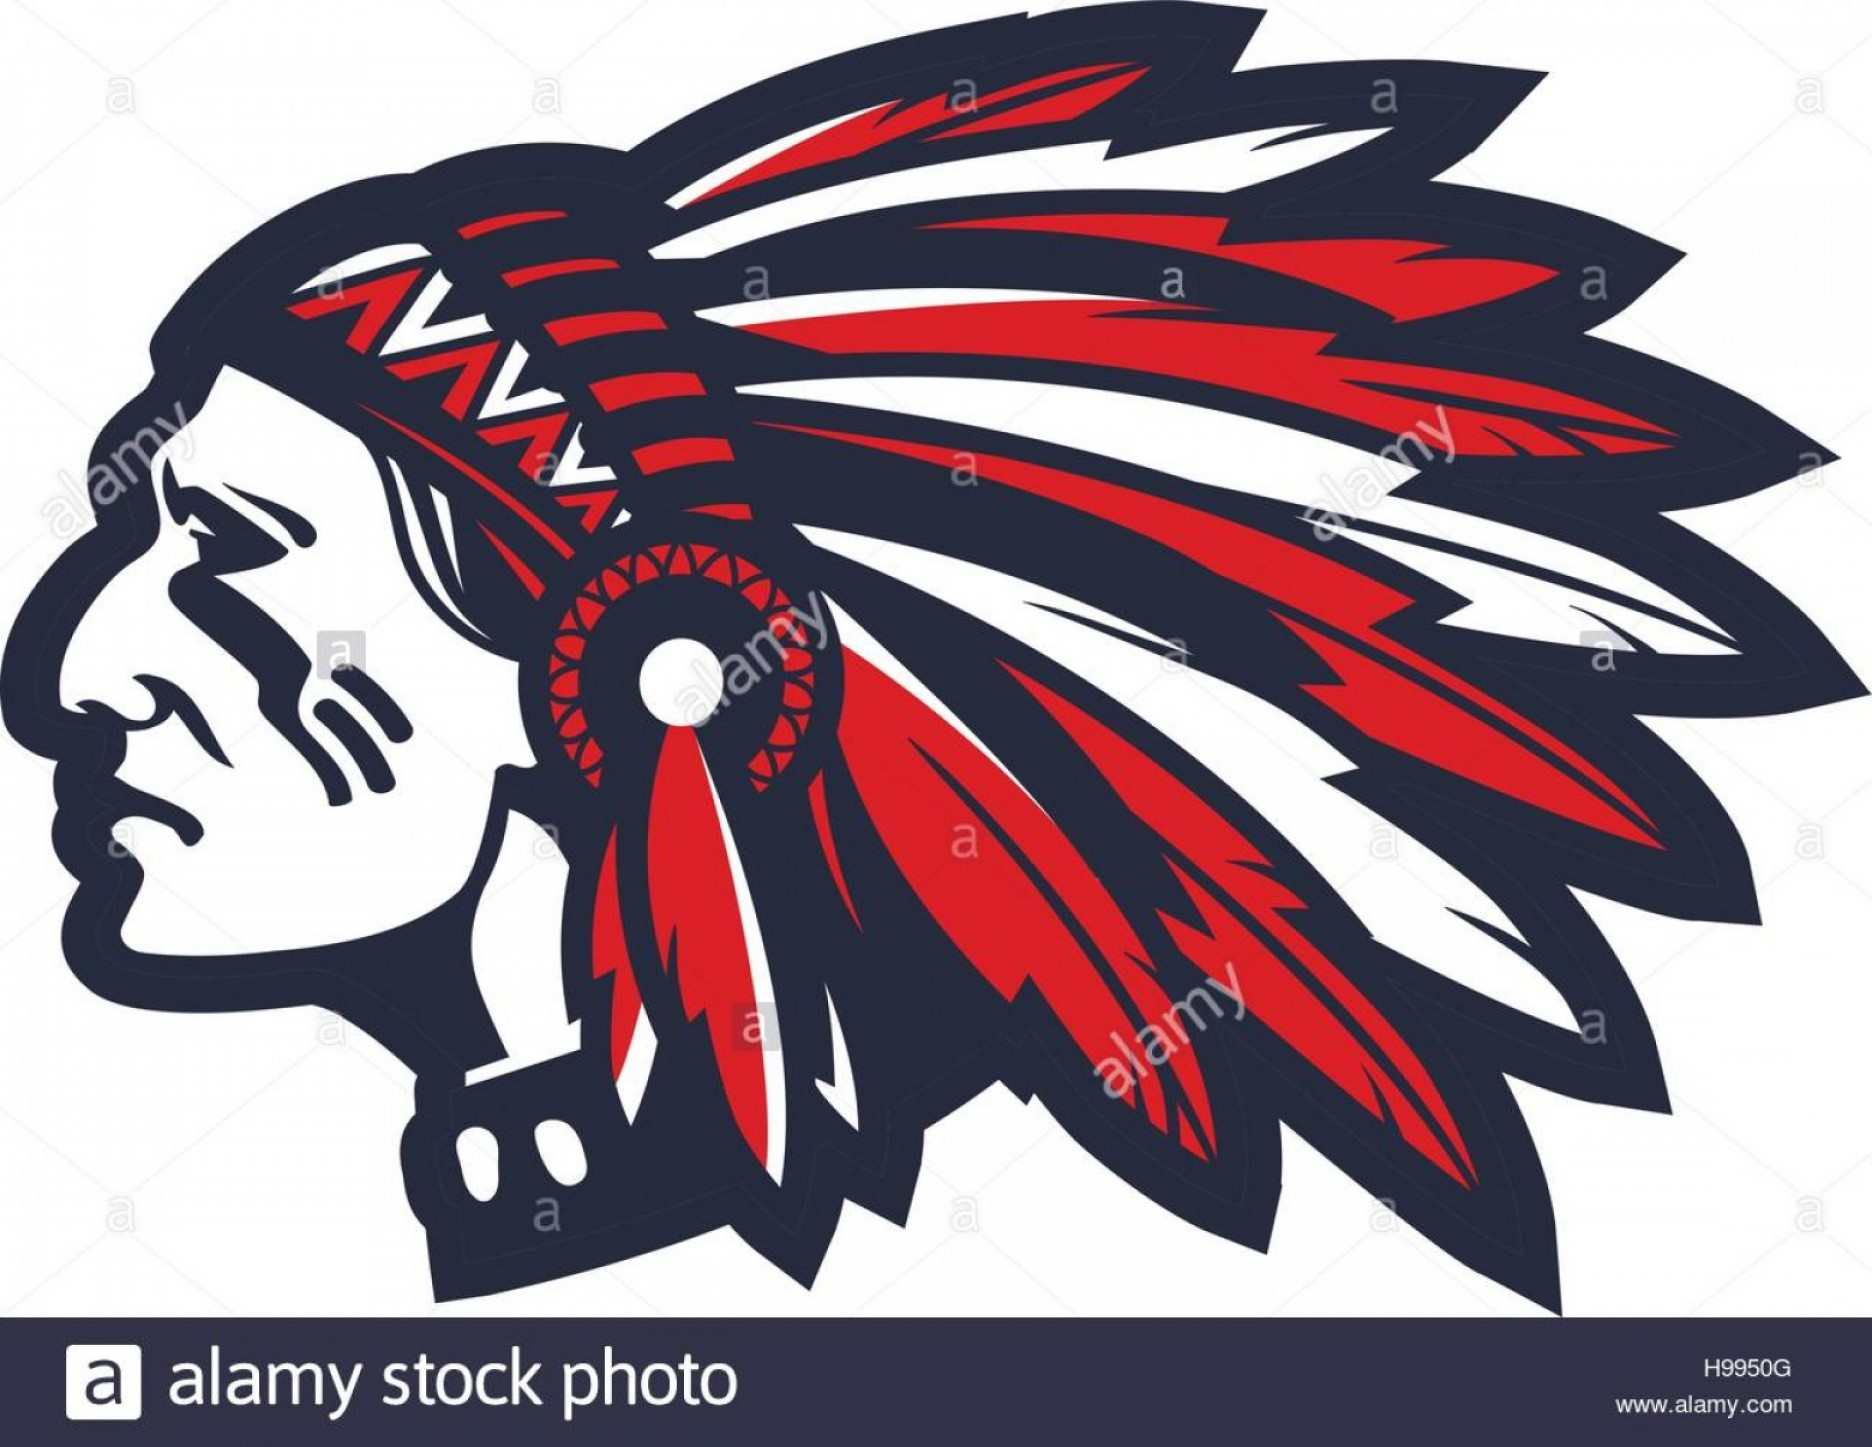 American Indian Chief Vector: Stock Photo American Indian Chief Vector Logo Or Icon